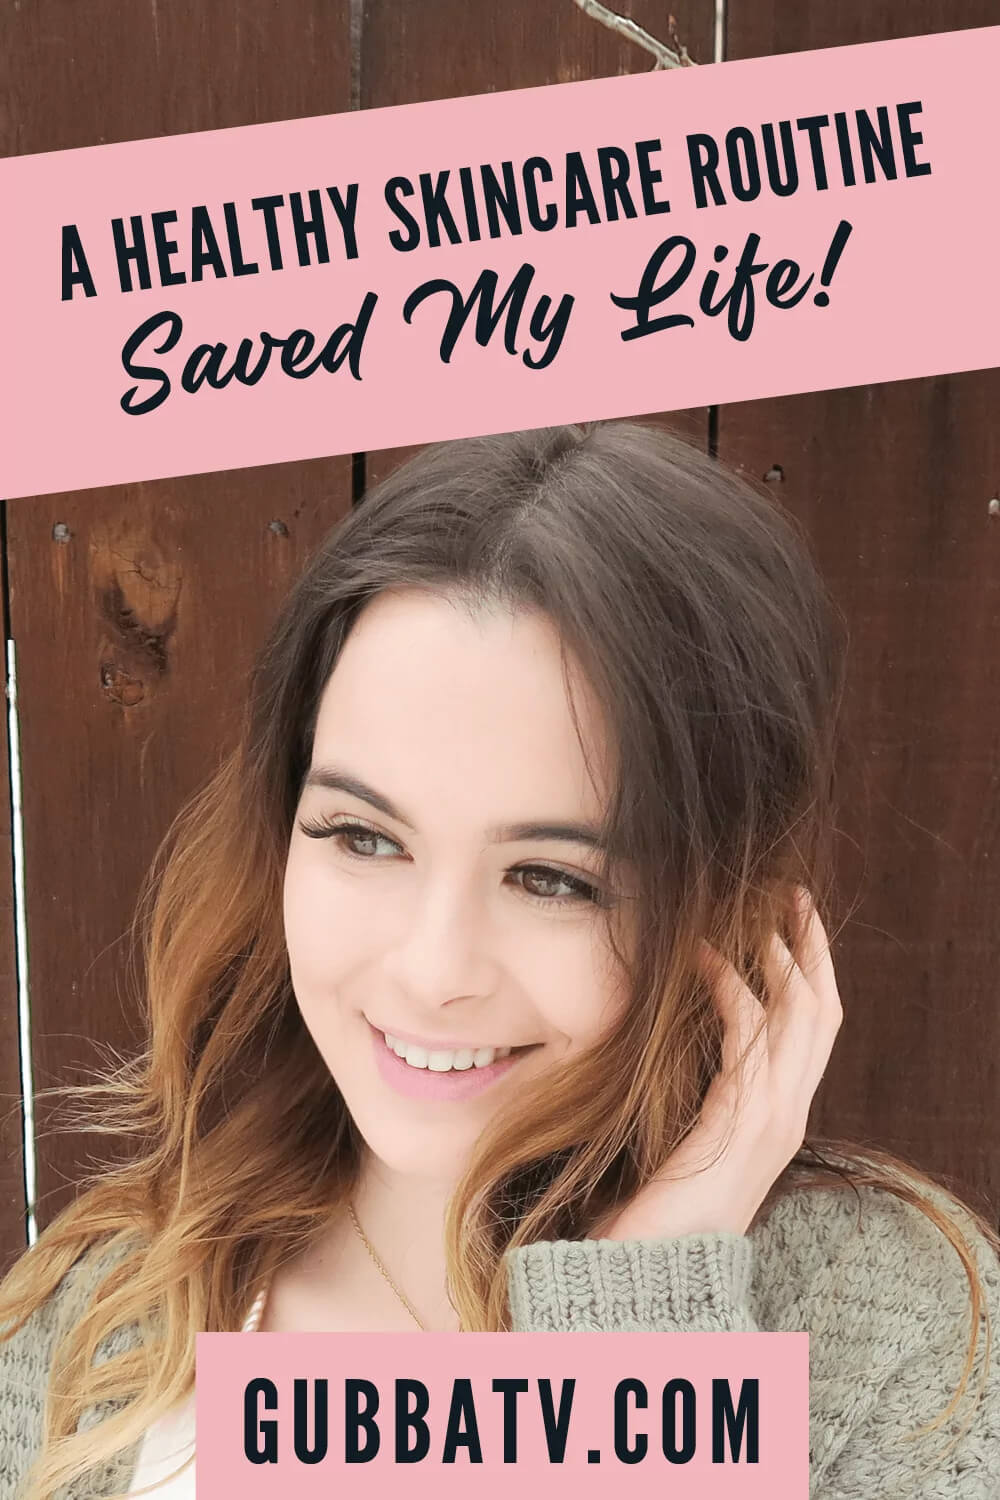 A Healthy Skincare Routine Saved My Life!